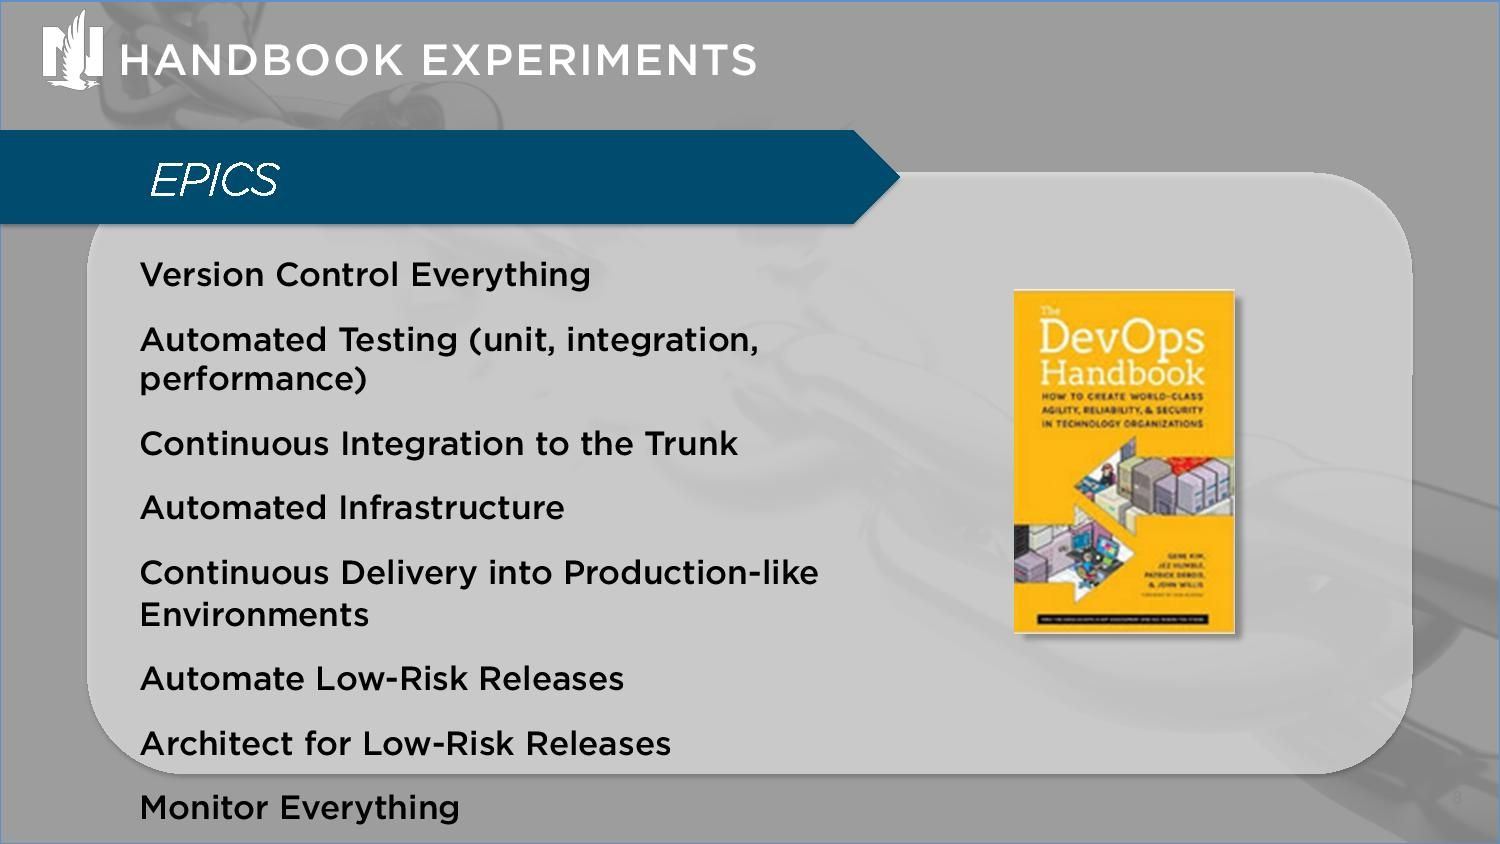 Grafmeyer, Jim, Payne, Cindy, DevOps Handbook Experiments in Accelerating Delivery